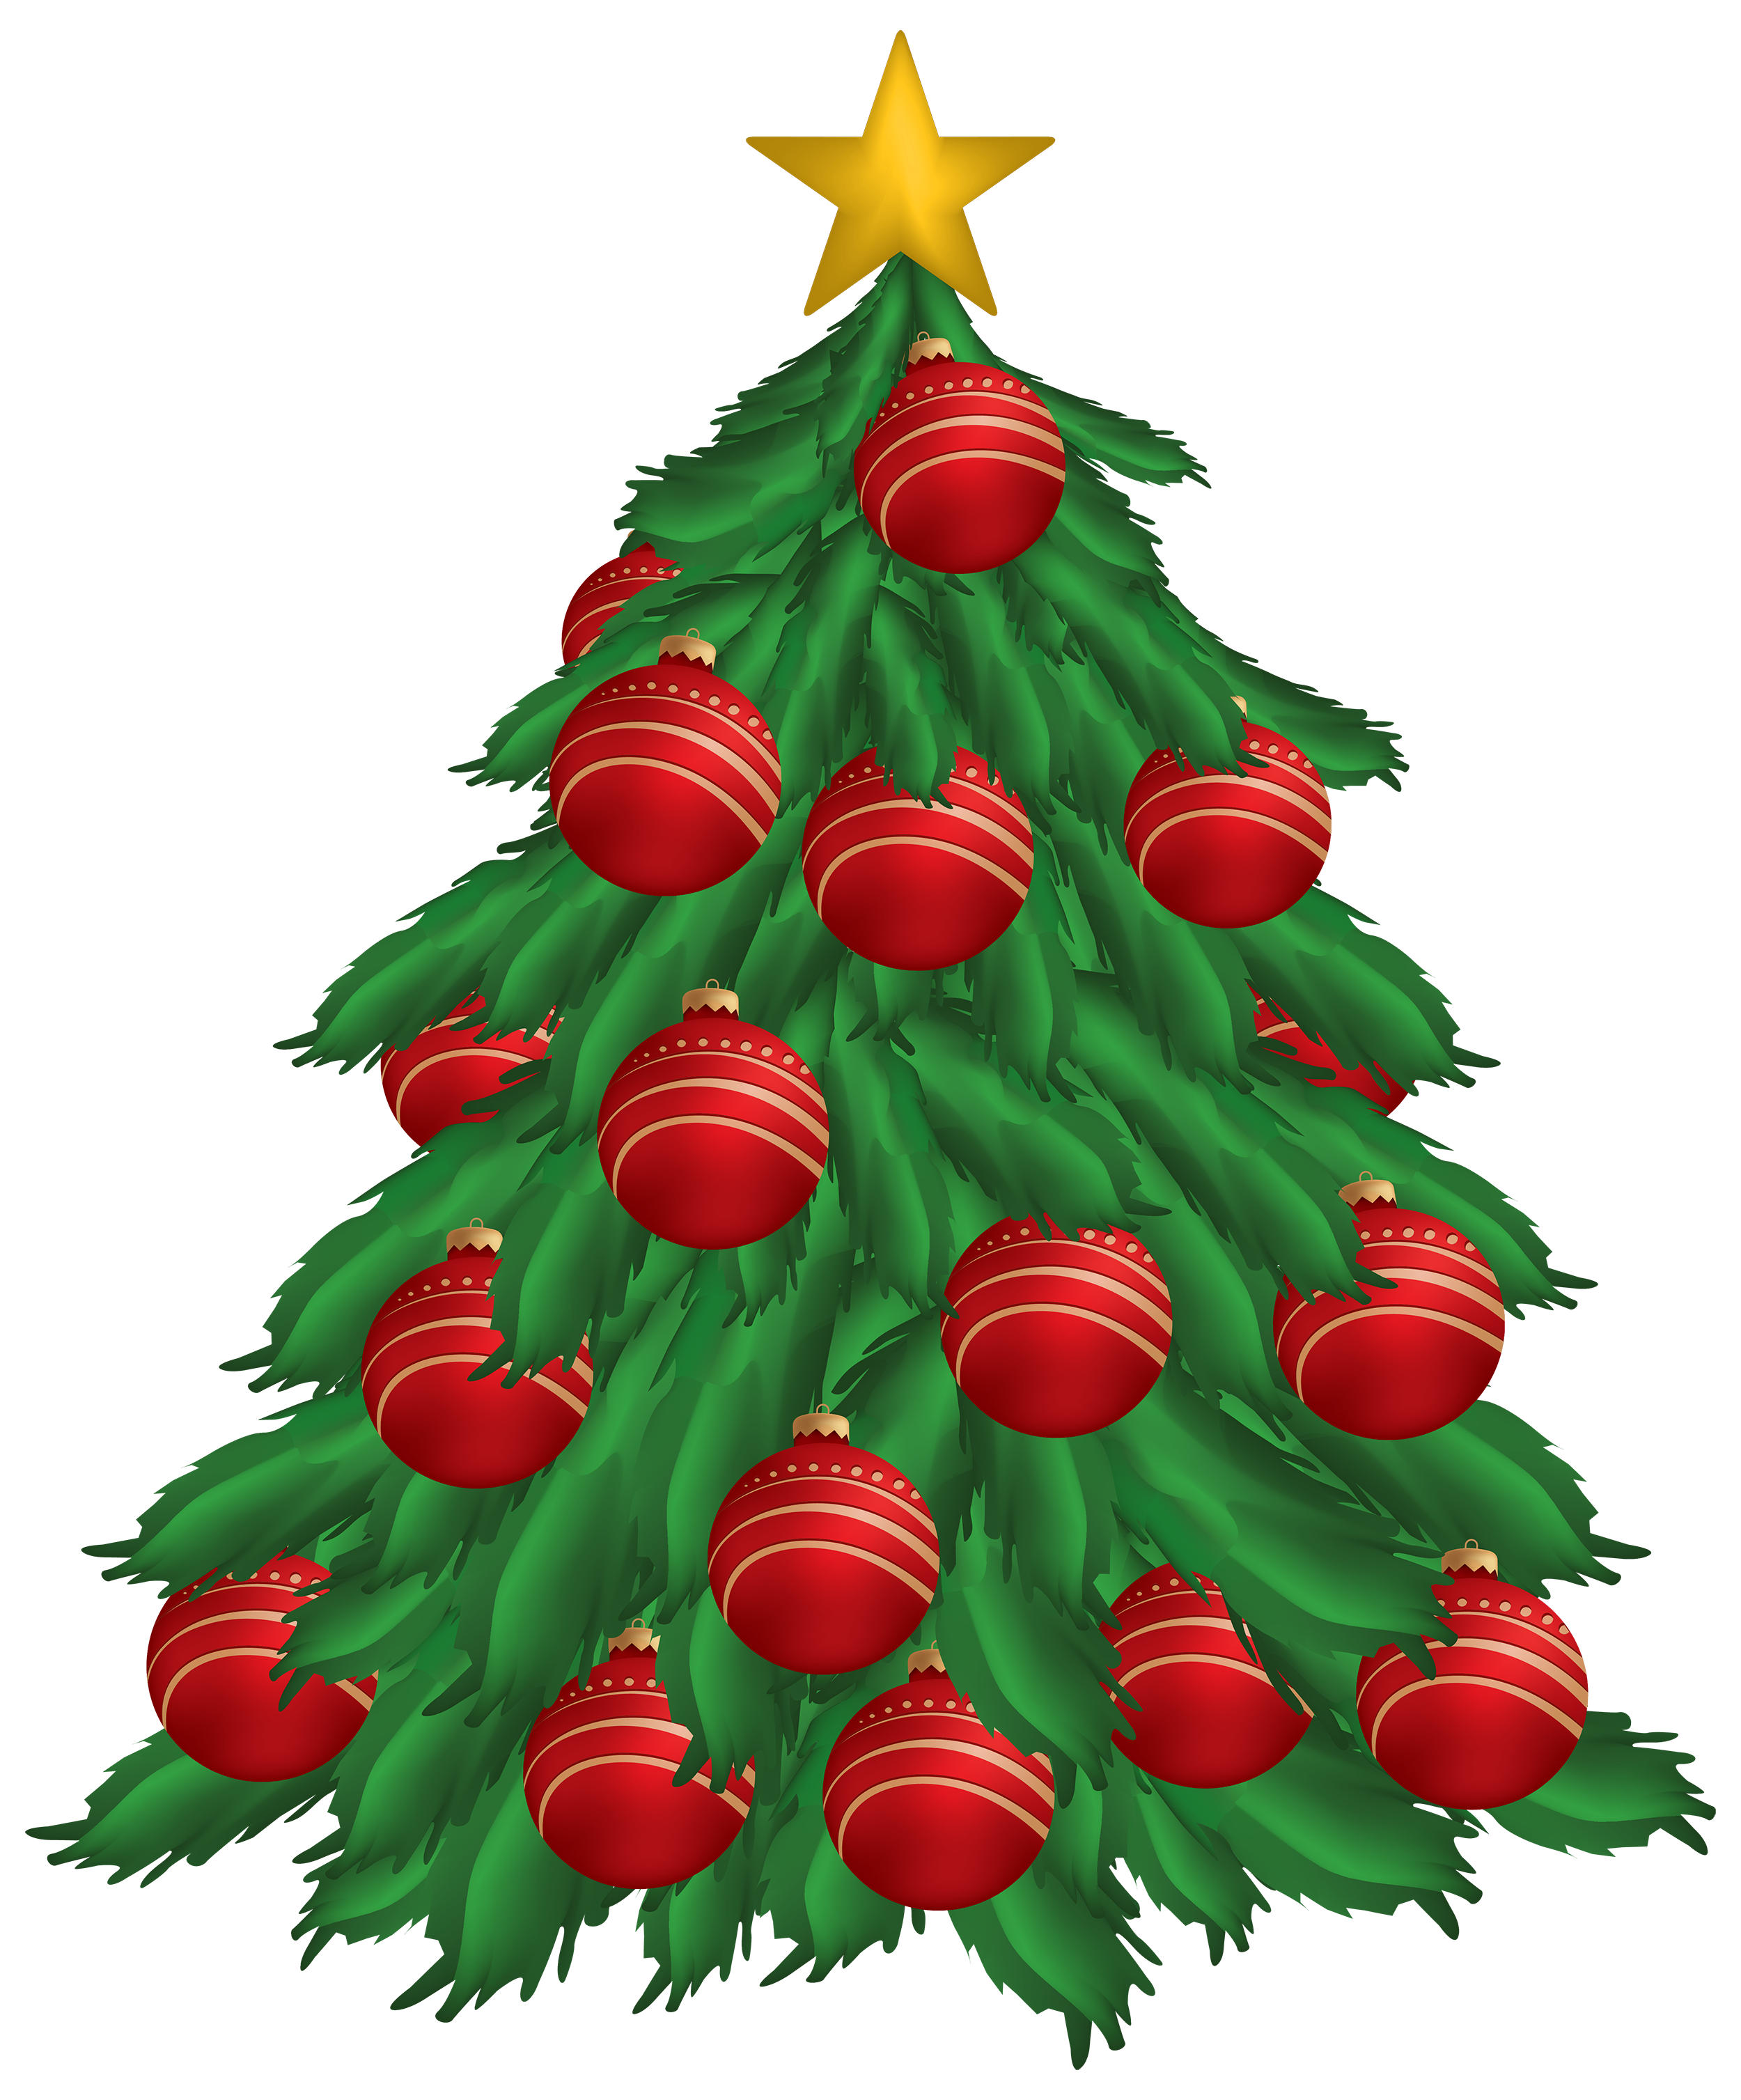 Christmas Tree with Red Christmas Ornaments PNG Clipart.